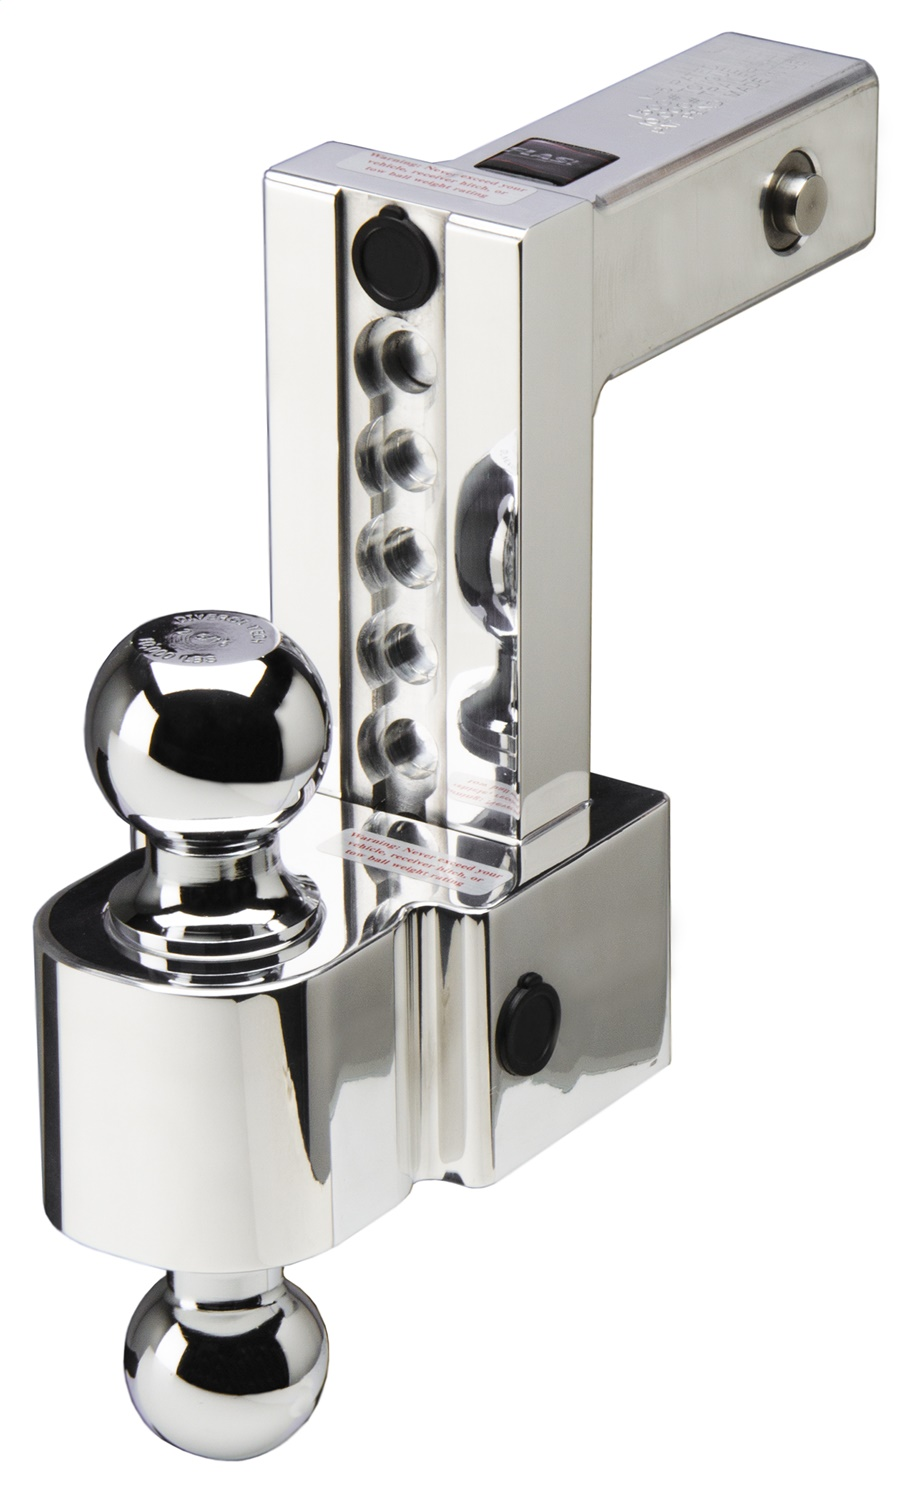 Flash ALBM Series Adjustable Locking Aluminum Ball Mount, Built In Locks, 6 in. Drop, Chrome 2 And 1 7/8 in. Ball